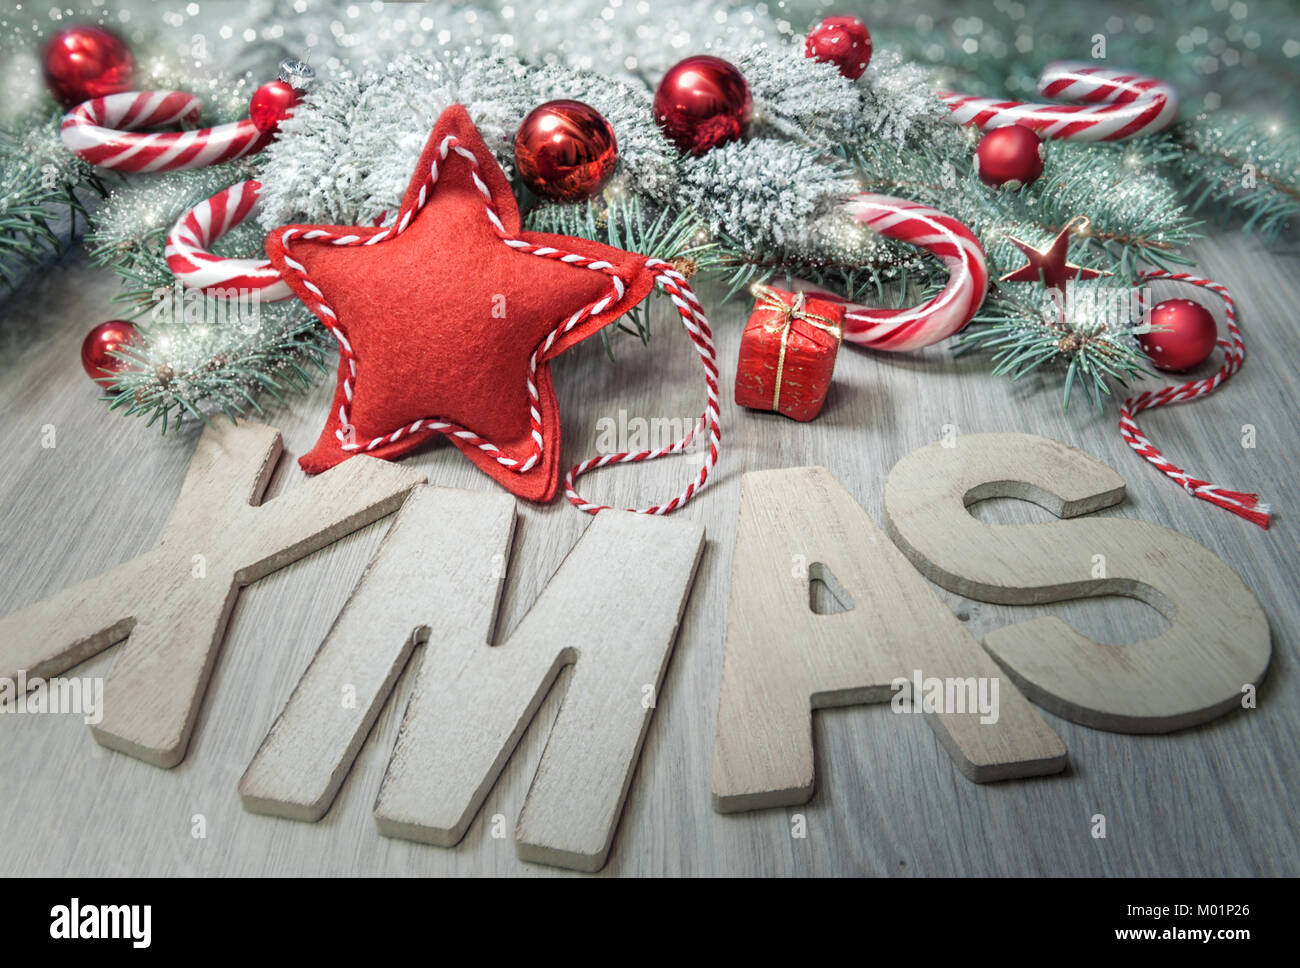 Wooden Letters Xmas And Winter Decorations In Red Beige And Green